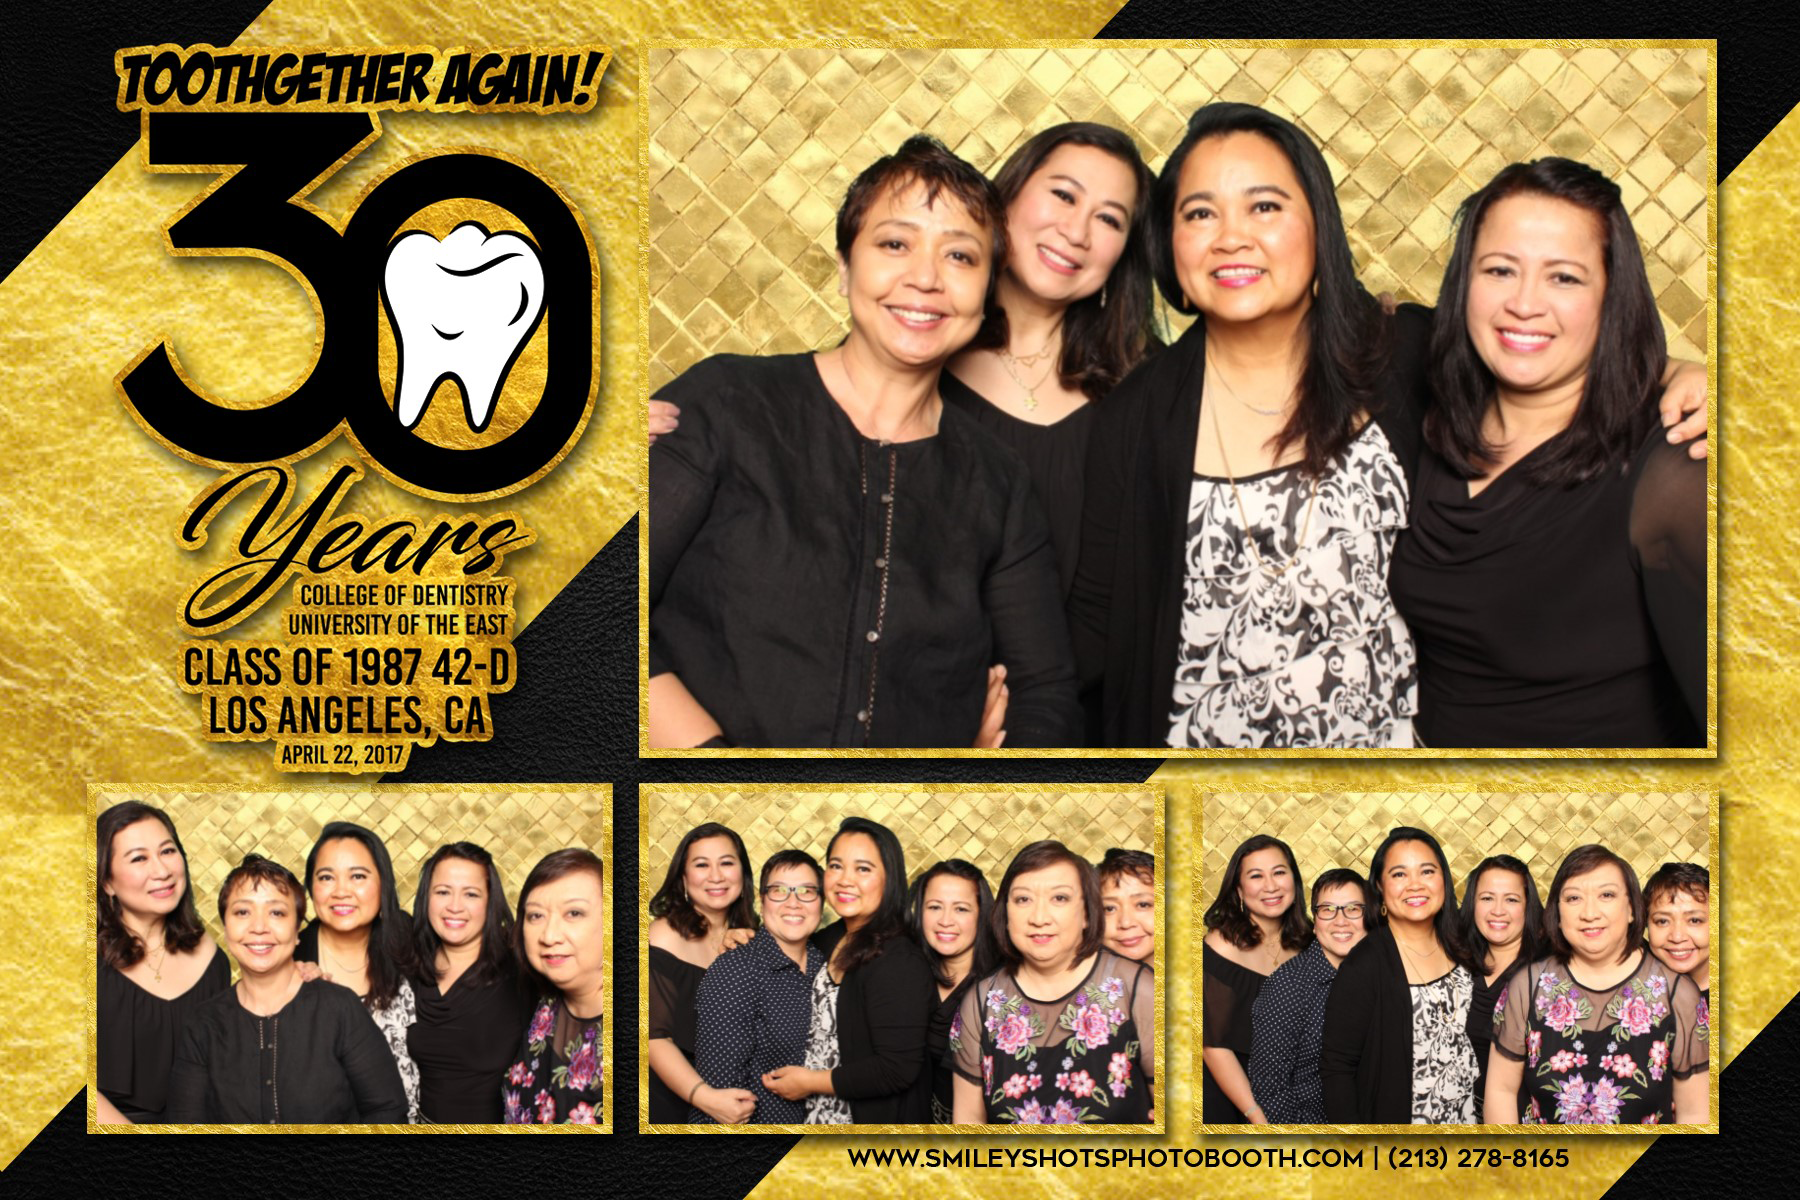 30th Years Dental UE Smiley Shots Photo Booth Photobooth (5).png